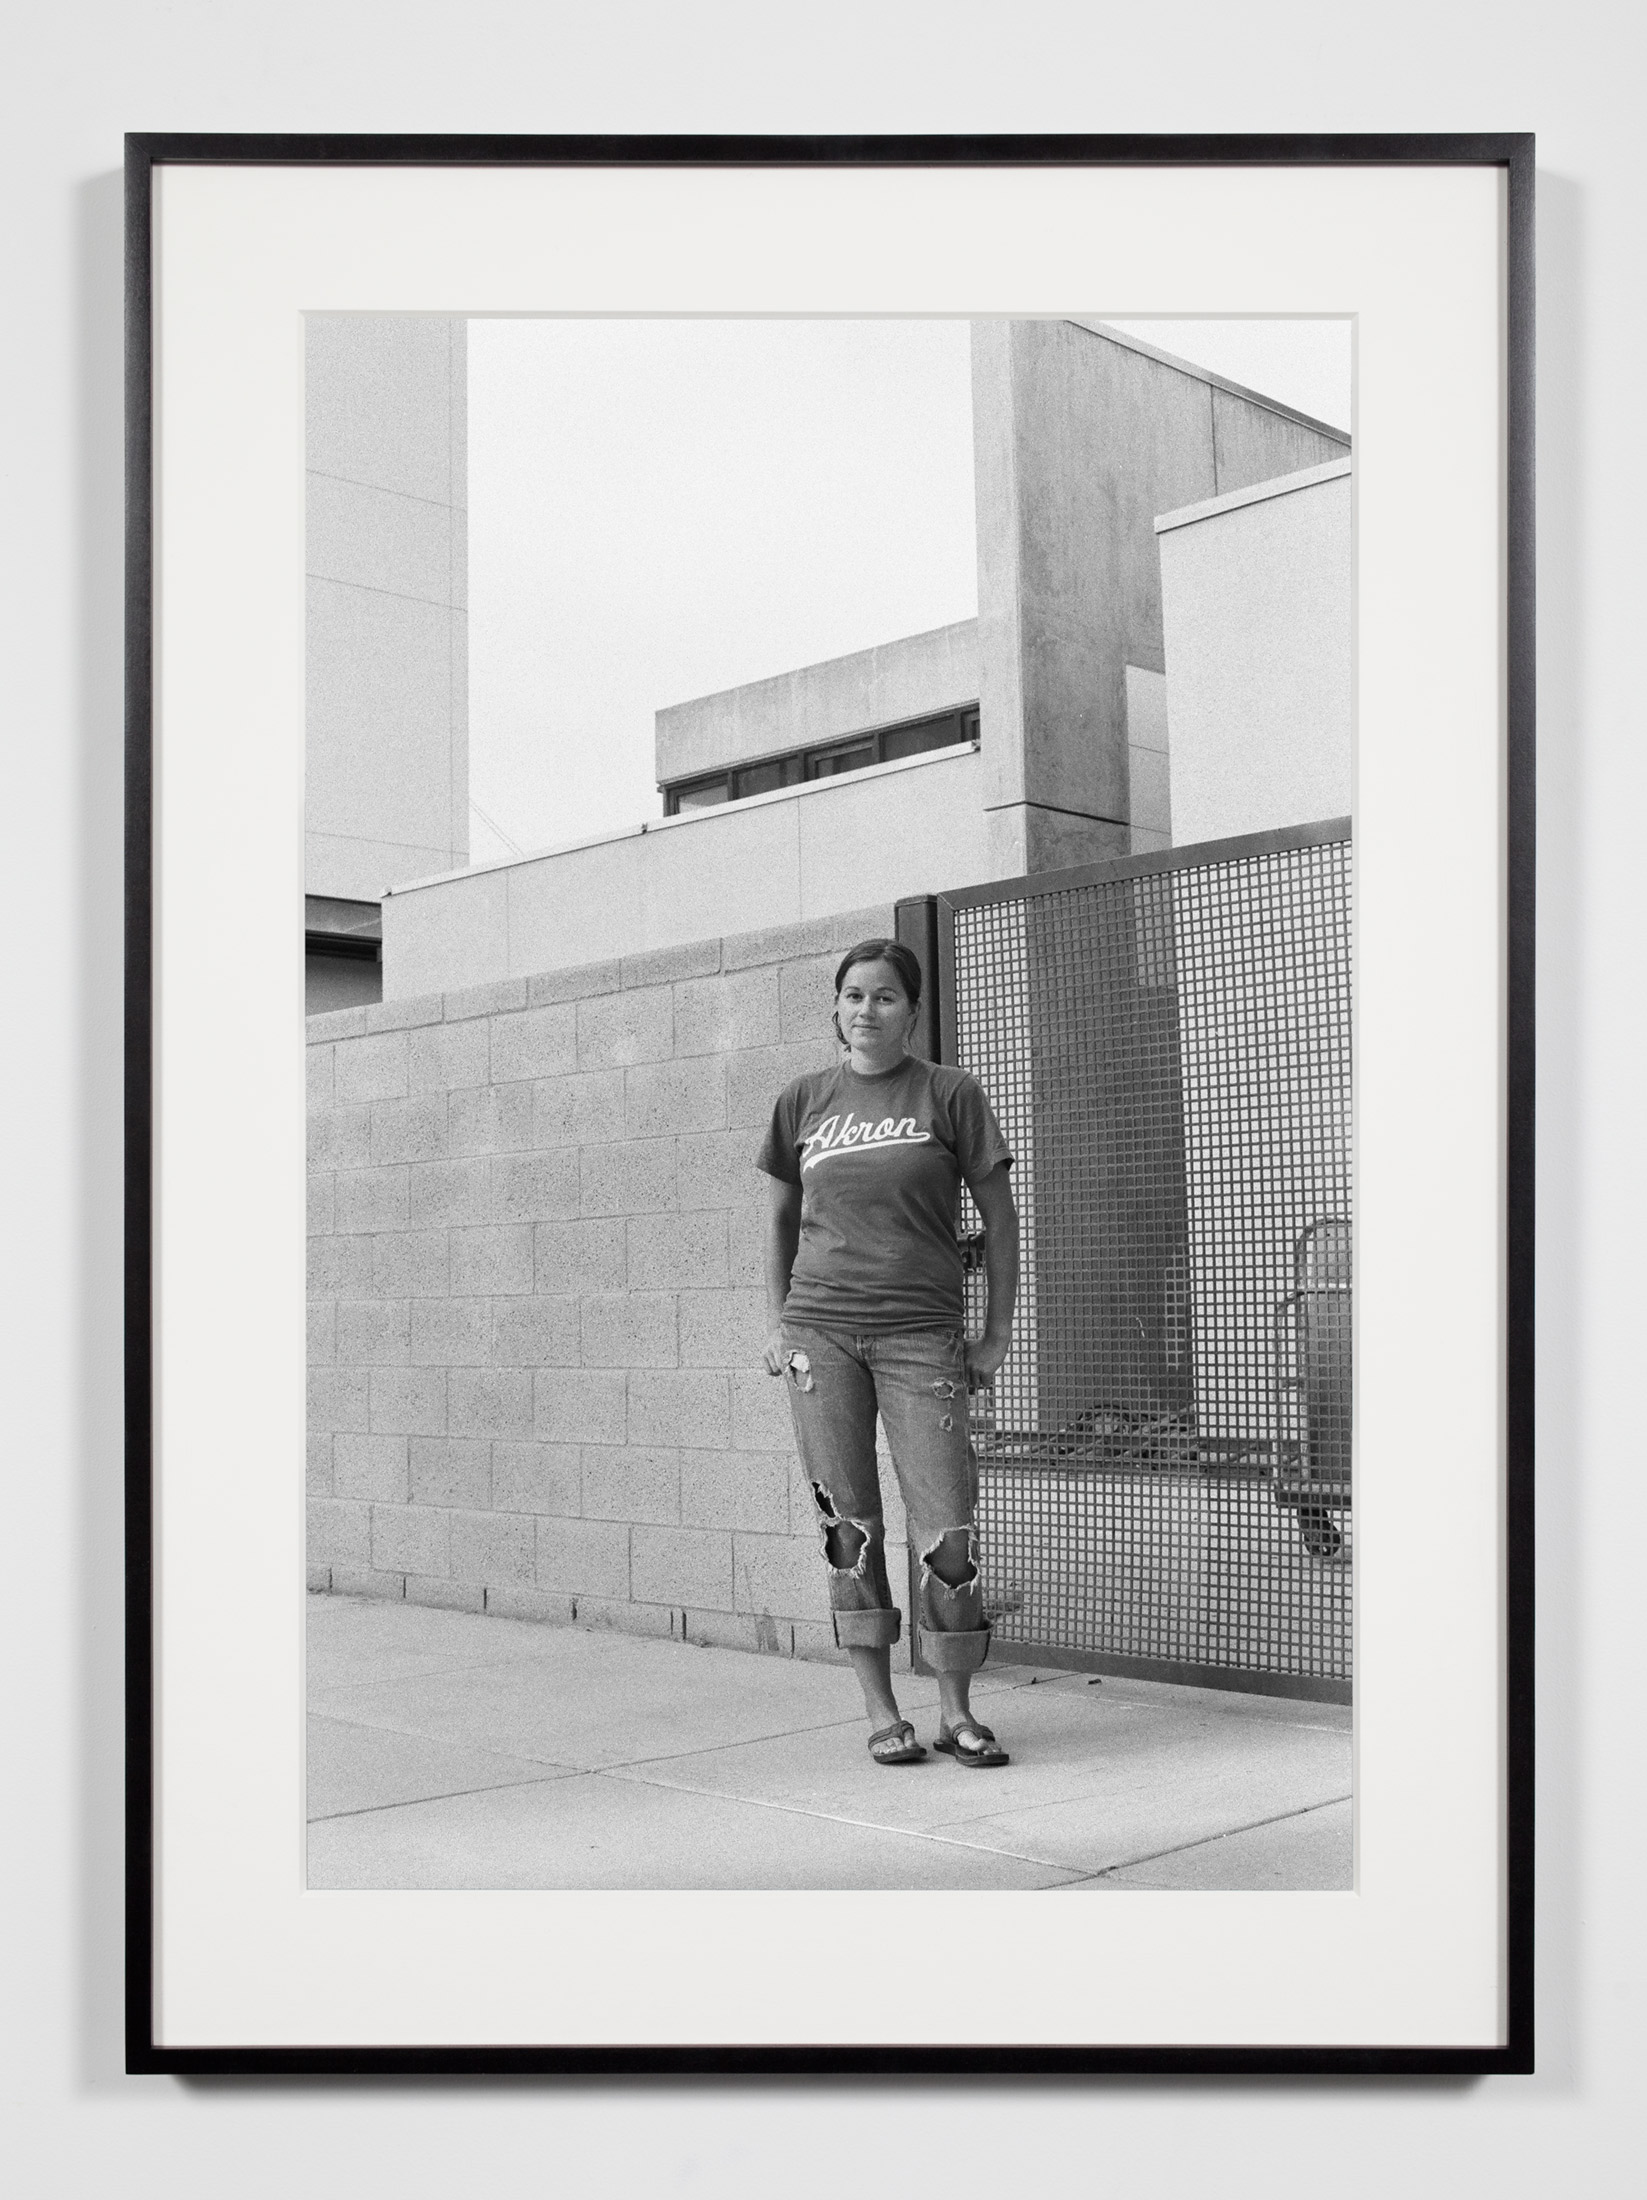 Darkroom Assistant, Irvine, California, September 14, 2009    2011   Epson Ultrachrome K3 archival ink jet print on Hahnemühle Photo Rag paper  36 3/8 x 26 3/8 inches   Industrial Portraits, 2008–